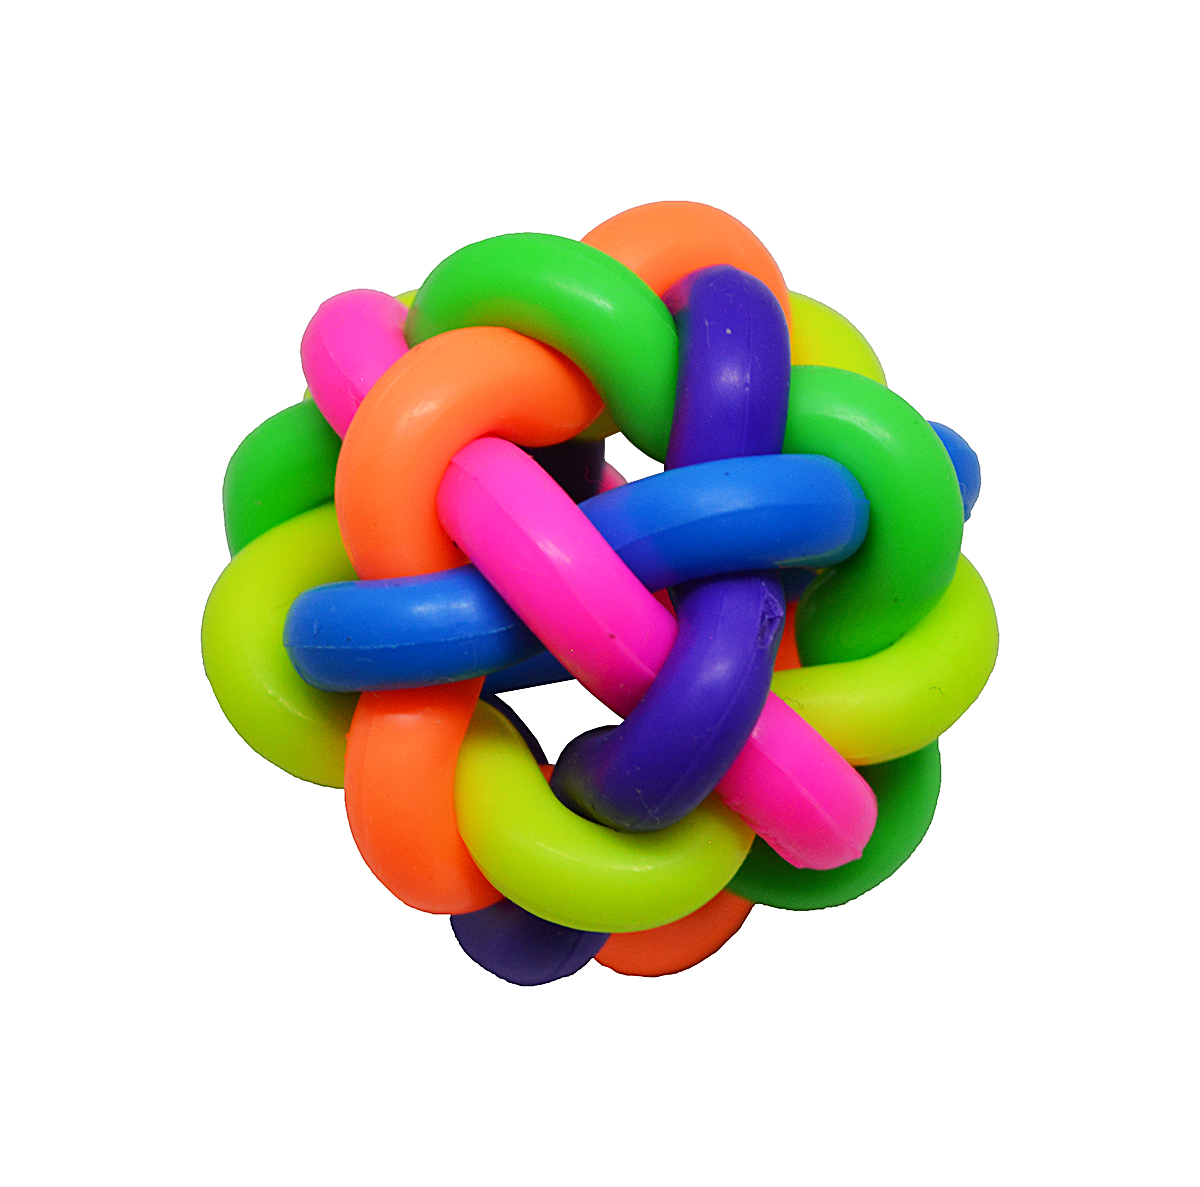 "RM IBBO12 OPAQUE 1-1/2"" INTERTWINING BALLS (12)"